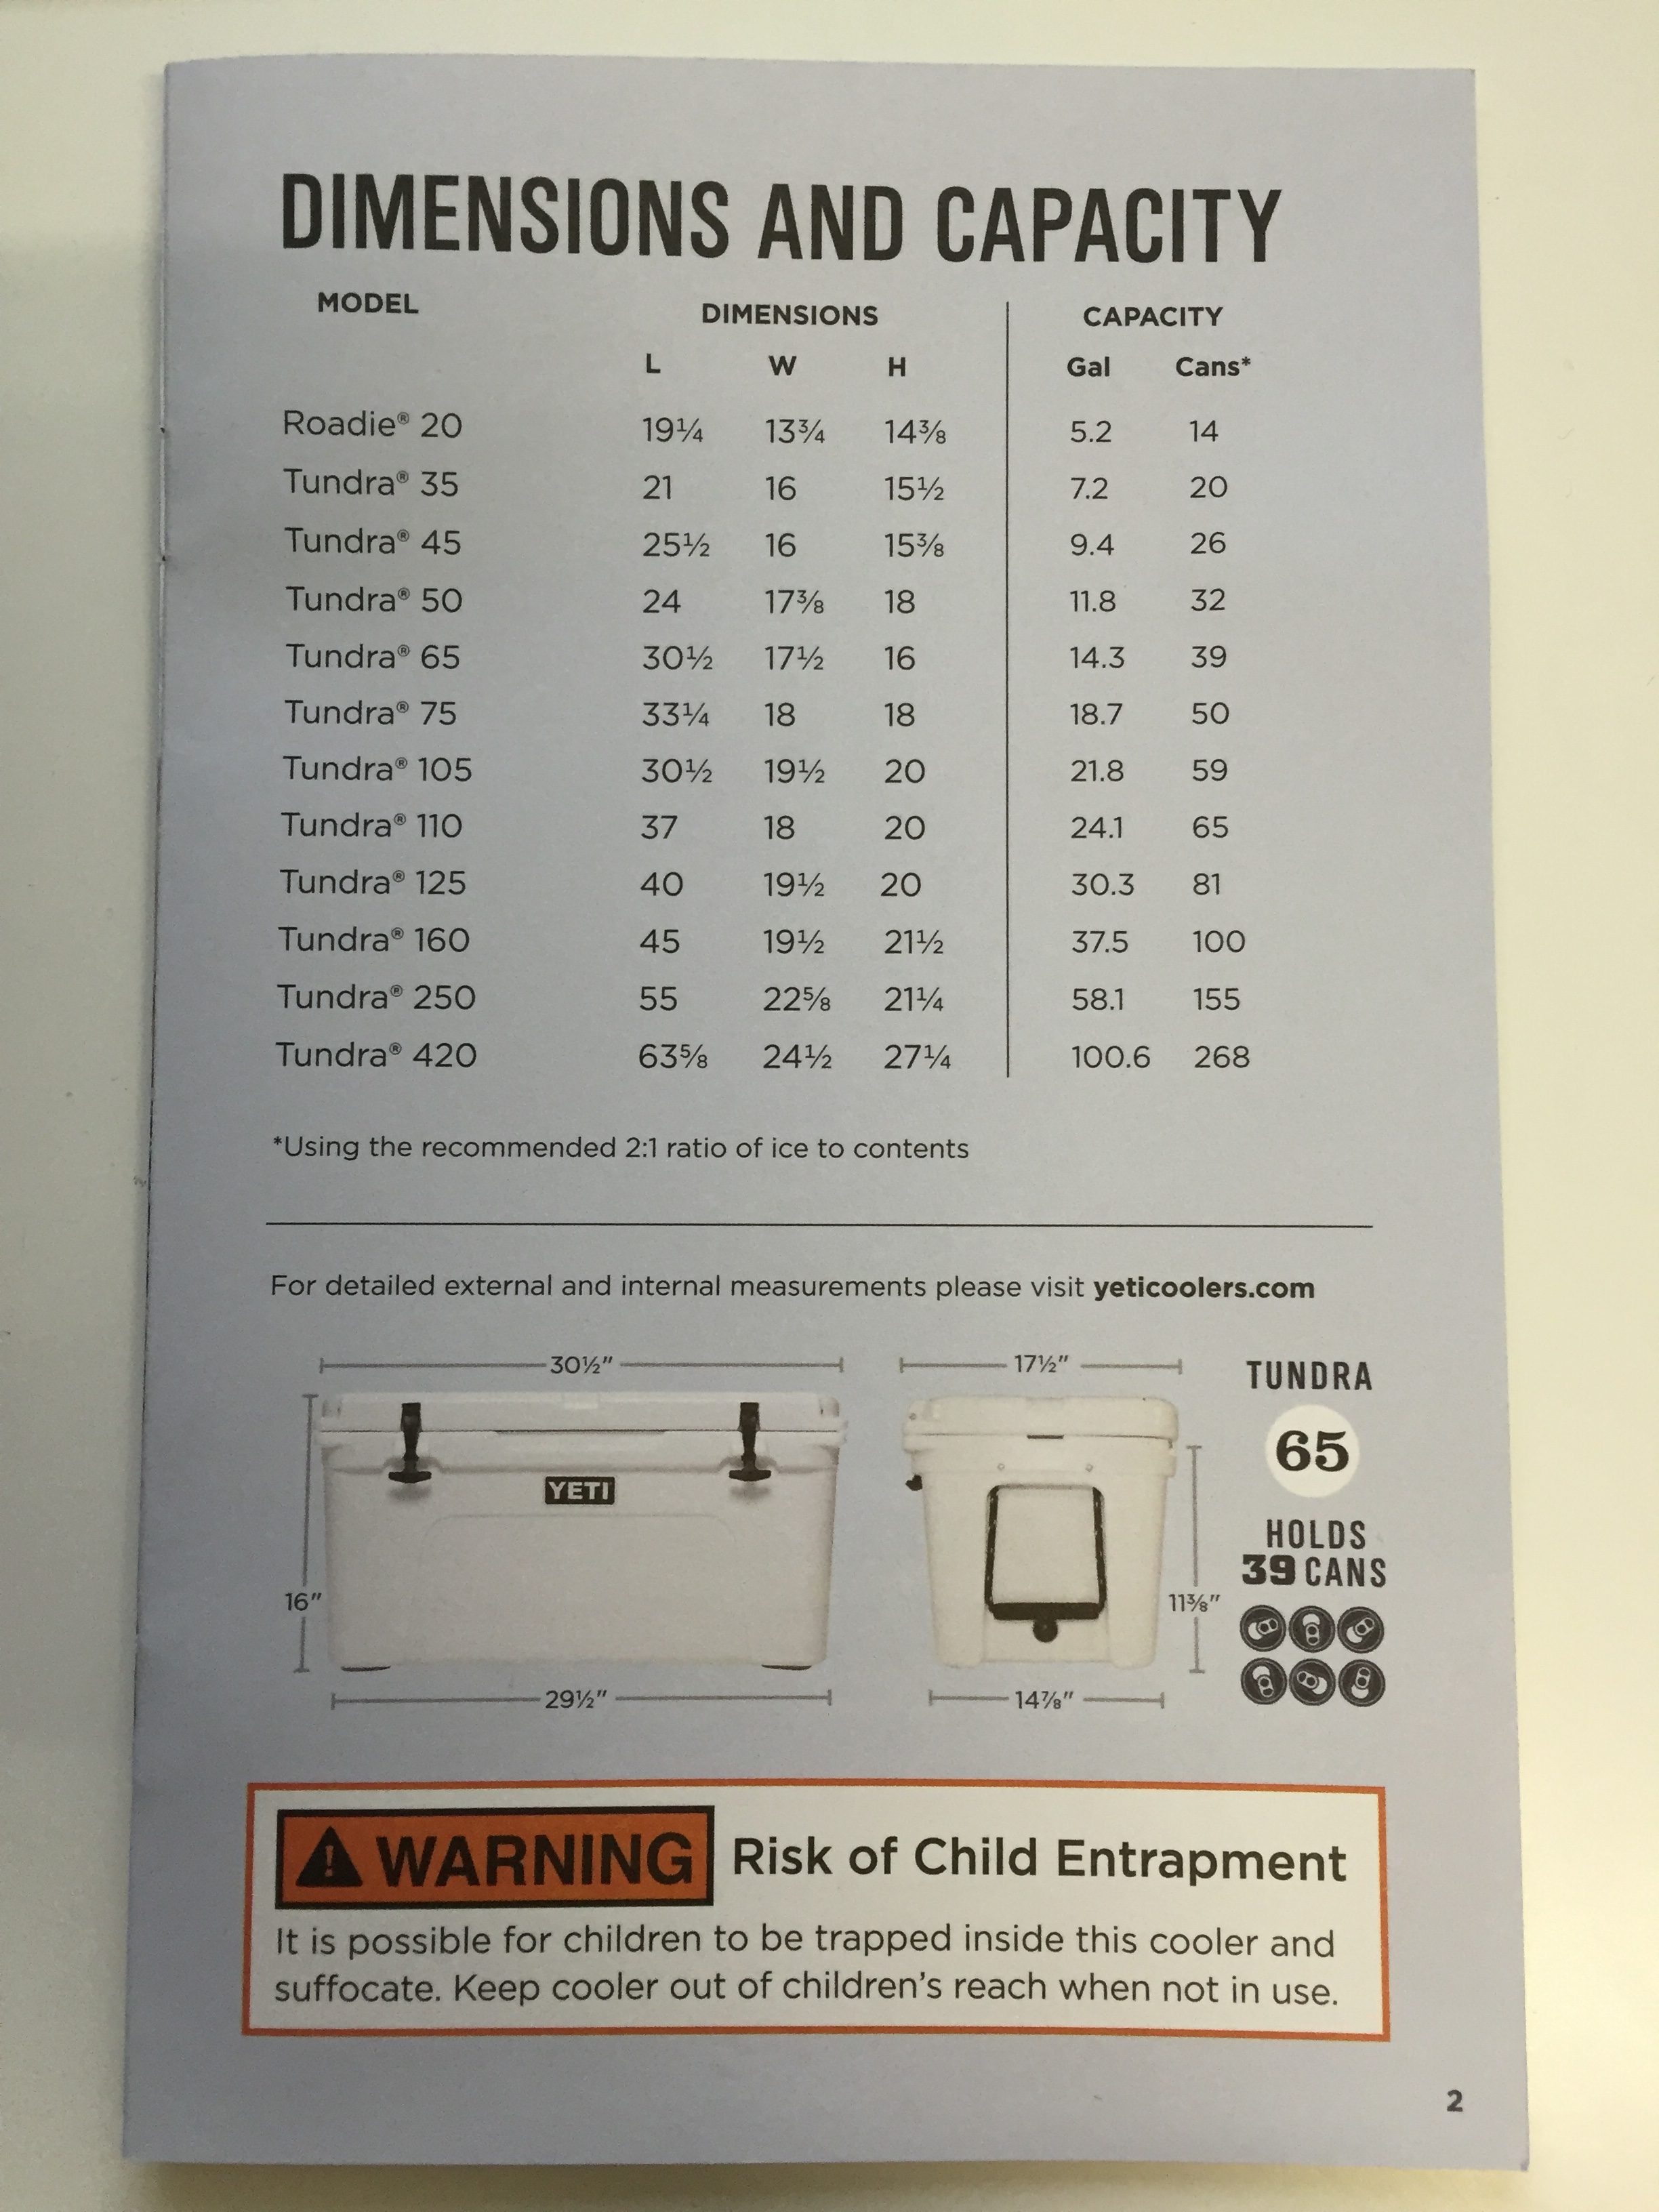 Yeti Coolers Actual Capacities - Real Volumes and Sizes Revealed